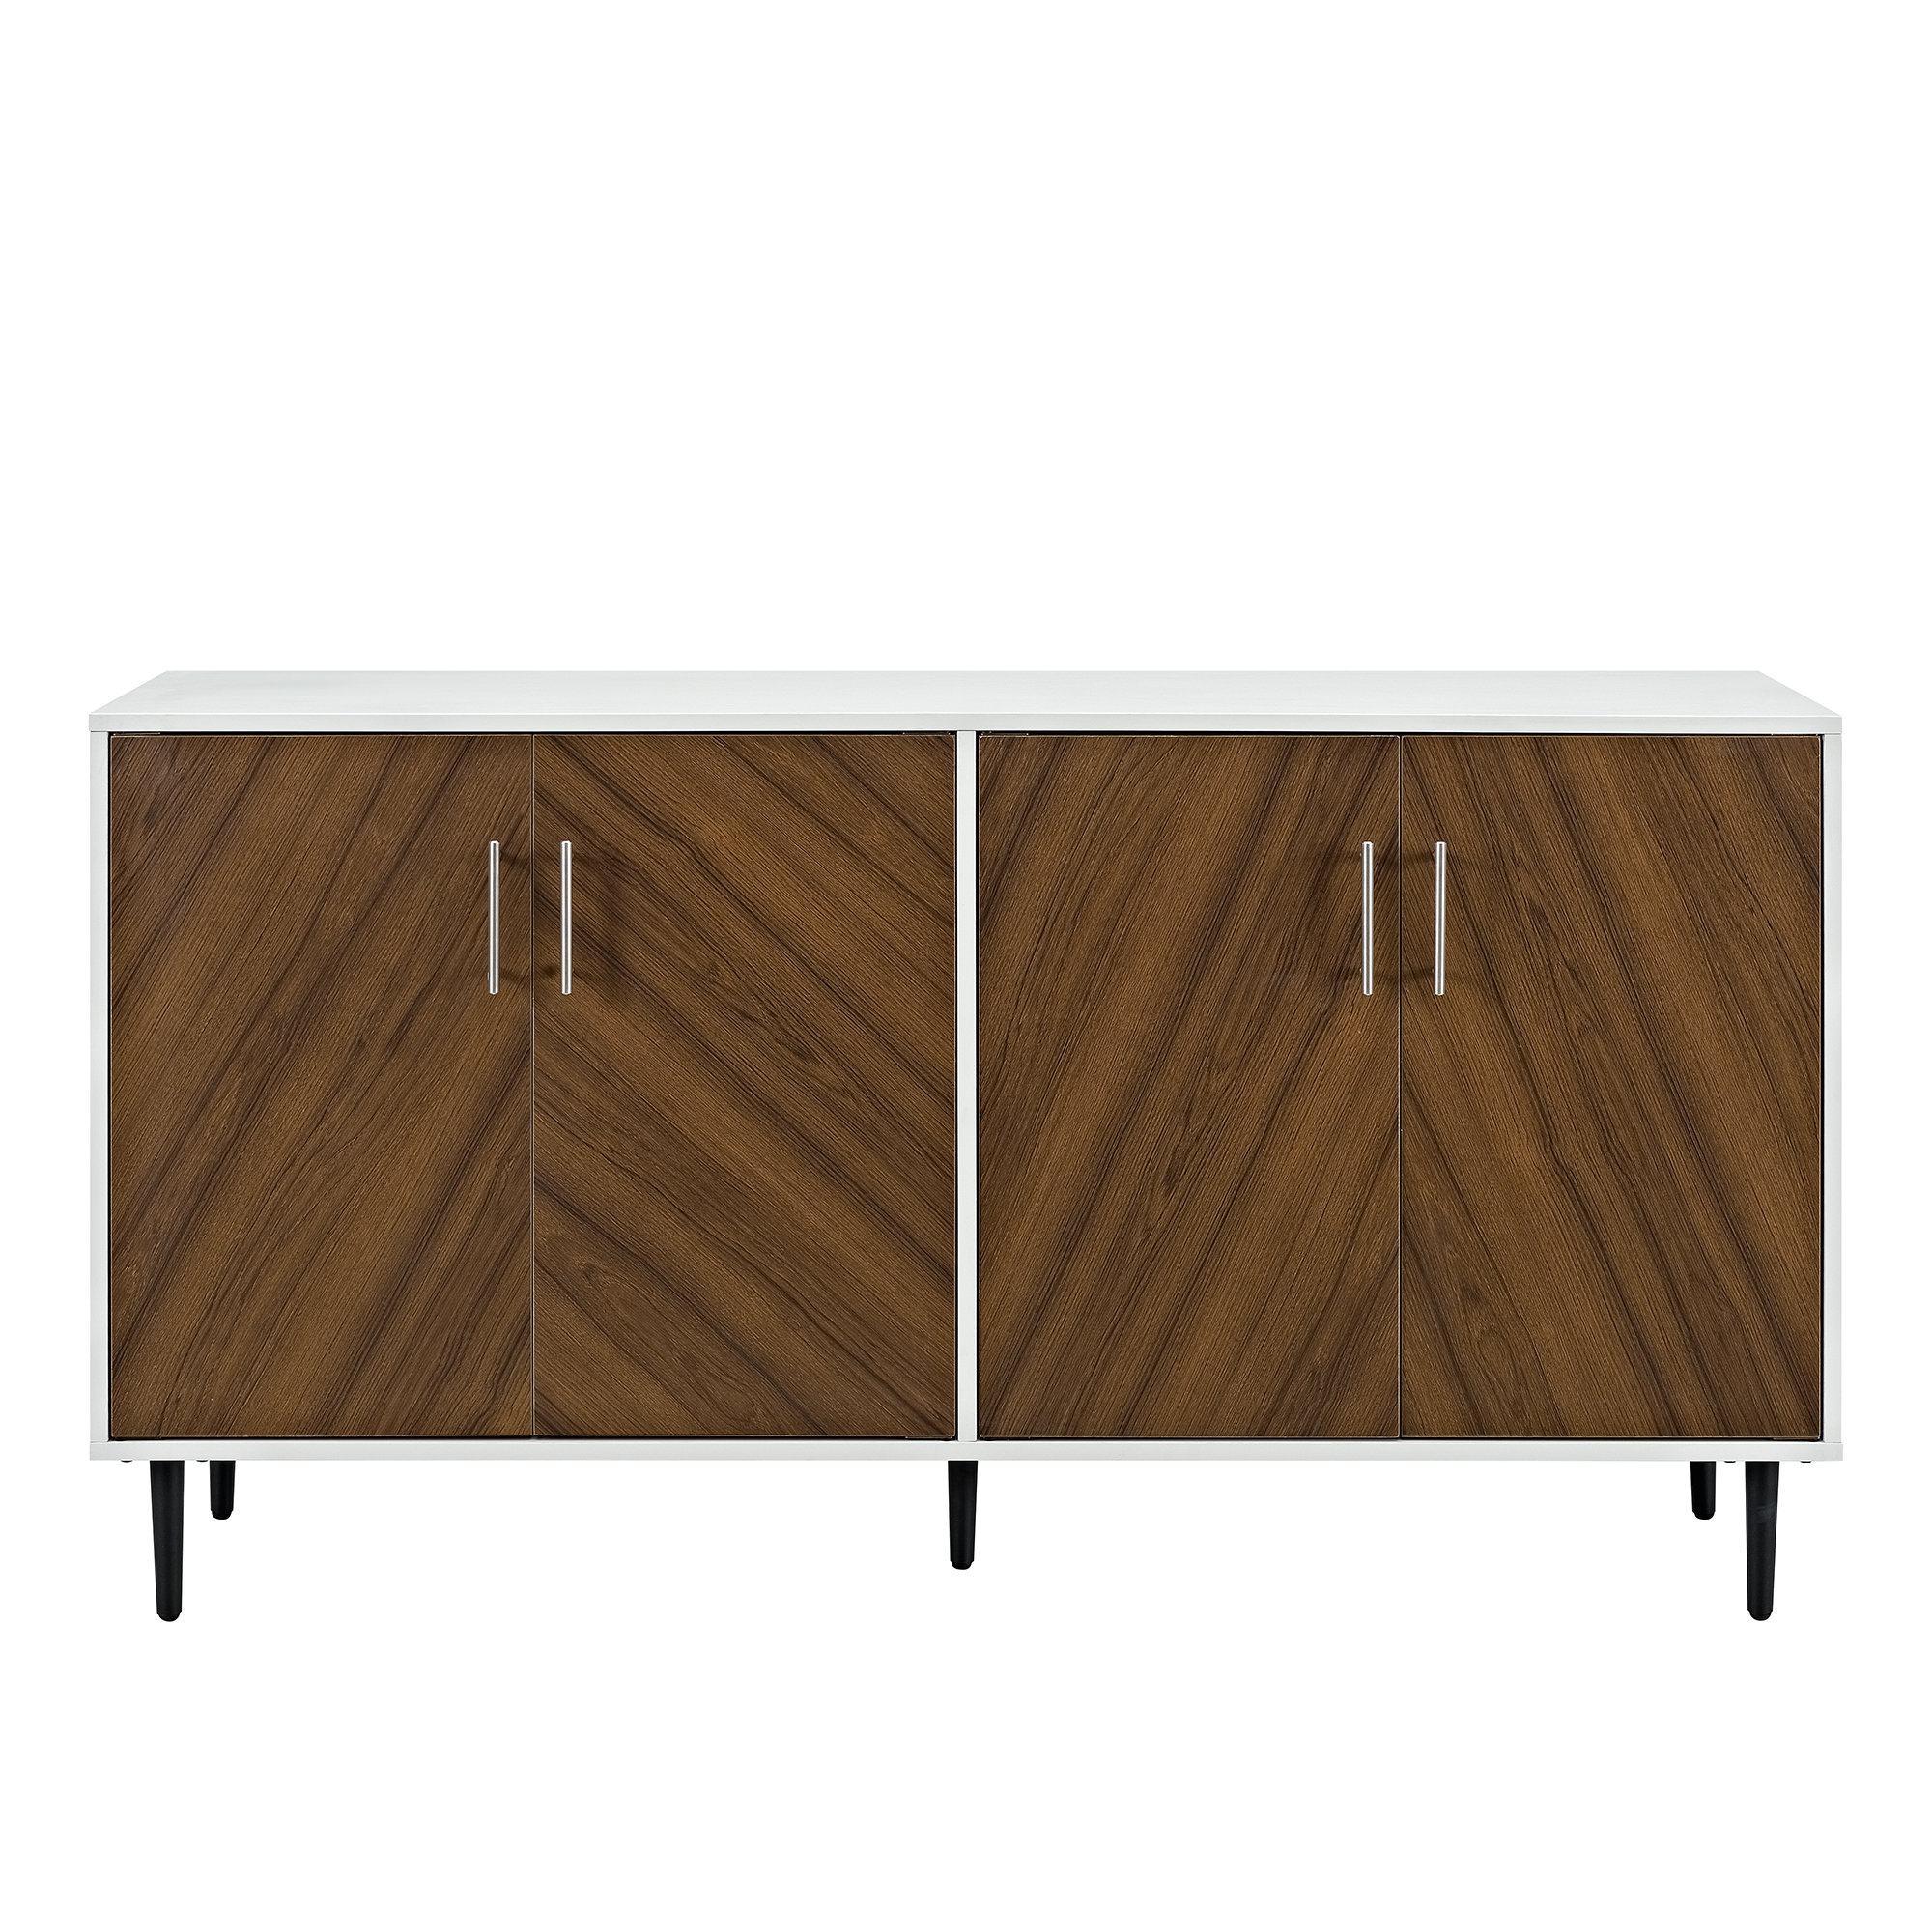 Keiko Modern Bookmatch Sideboards Within Preferred Keiko Modern Bookmatch Sideboard (View 14 of 20)